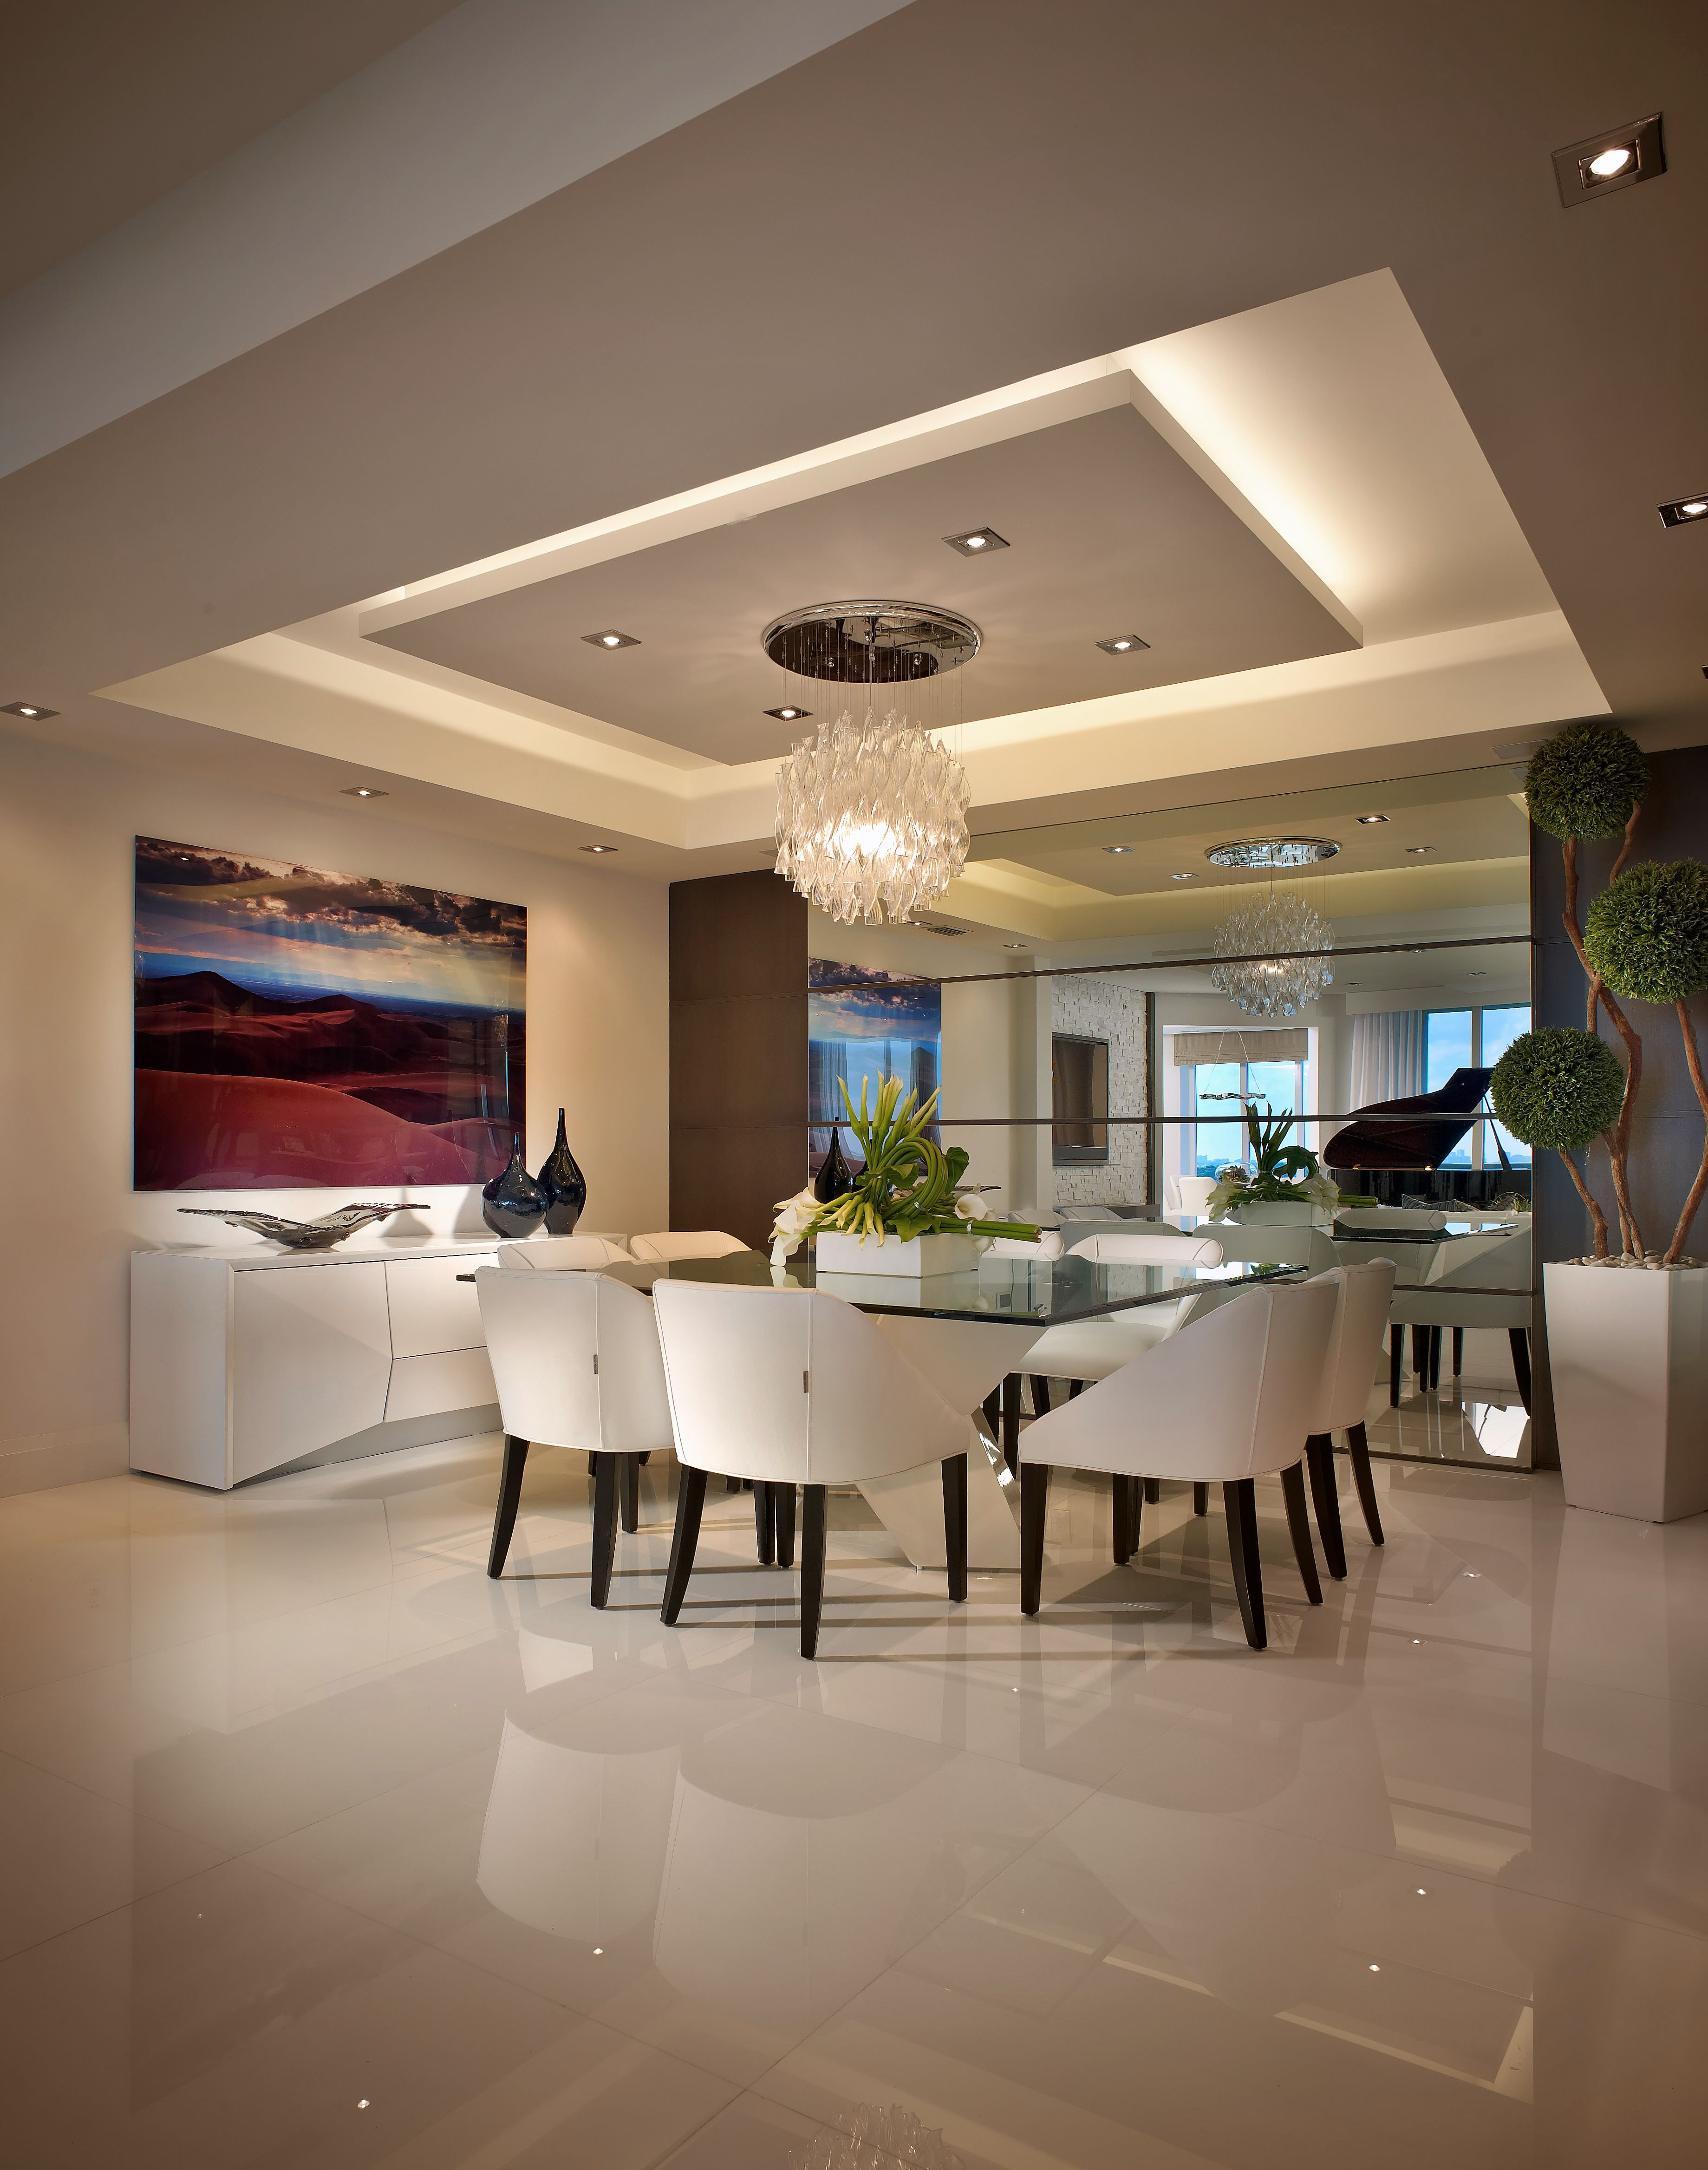 Interior Design Archives News Events House Ceiling Design Ceiling Design Living Room Ceiling Design Modern